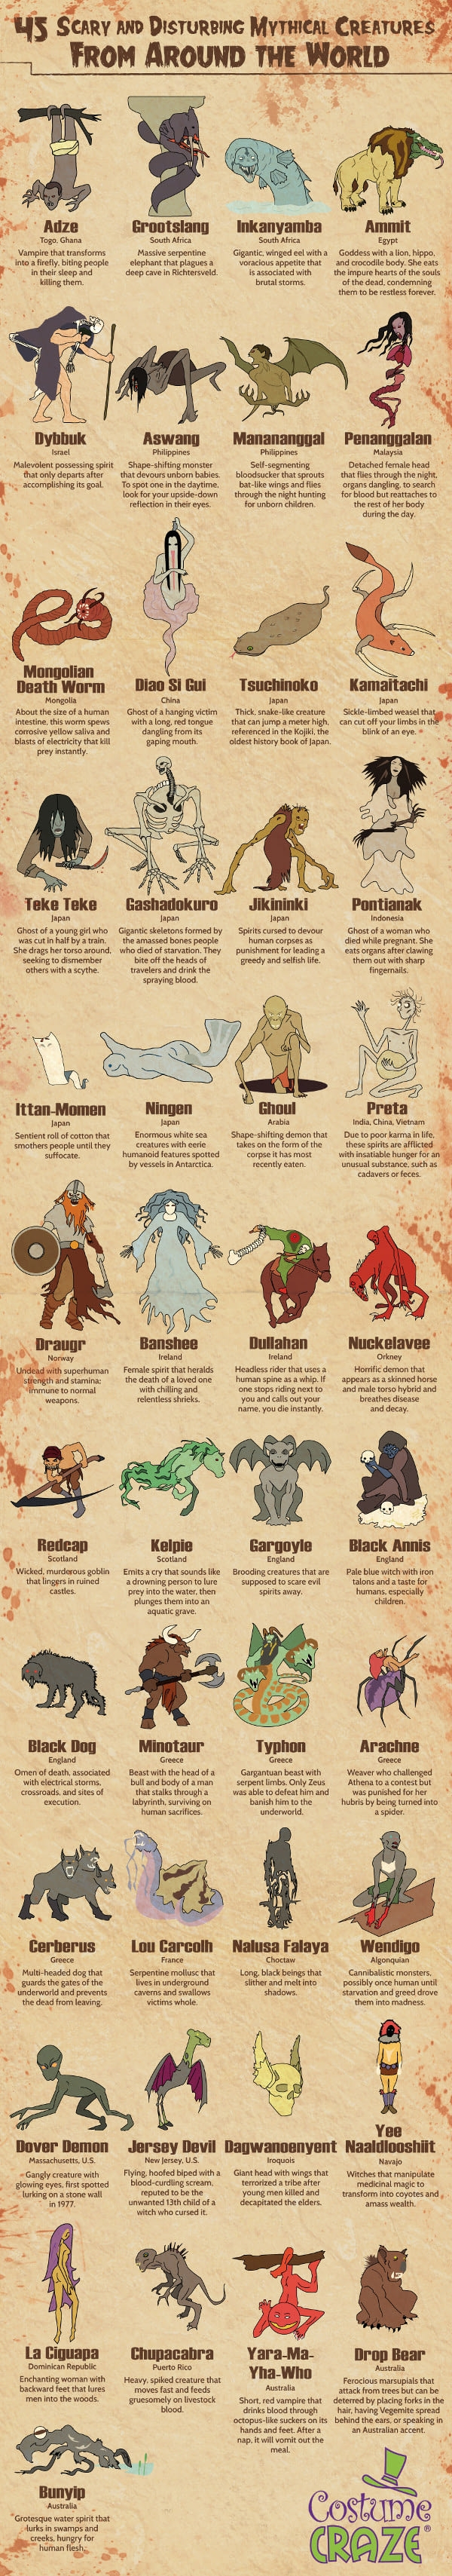 Most disturbing mythical creatures from around the world